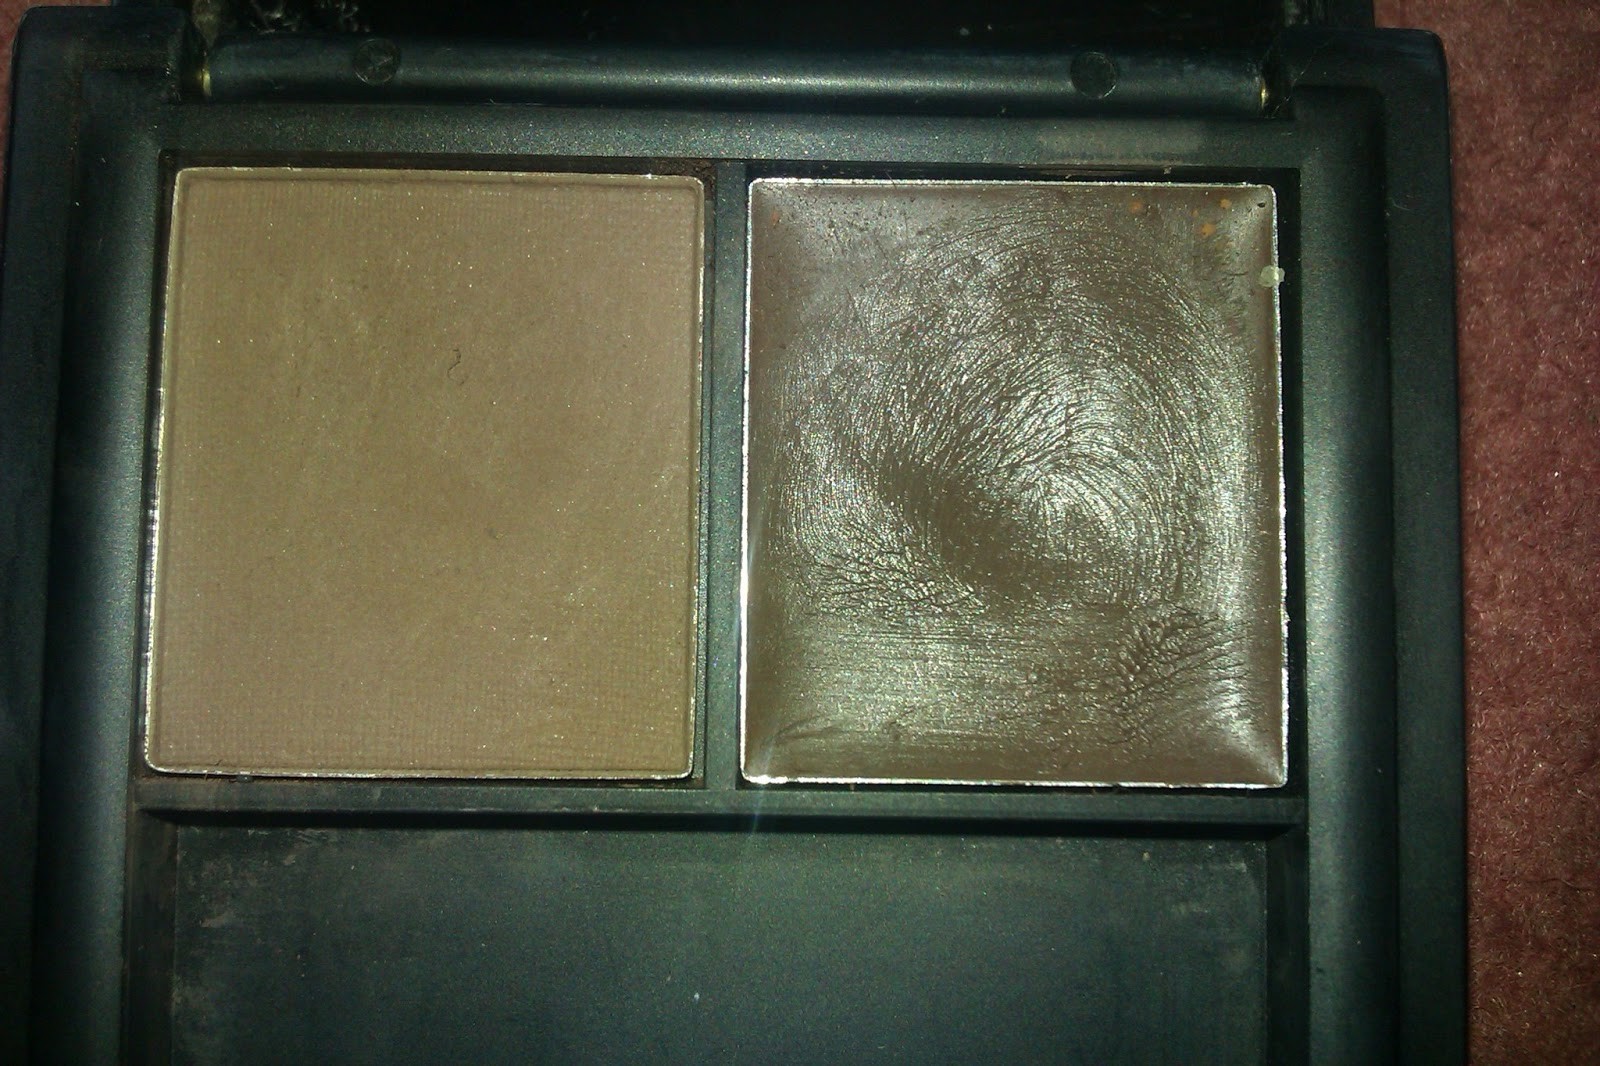 Sugar and Spice: Sleek ~ Face Contour Kit & Brow Kit ~ REVIEW